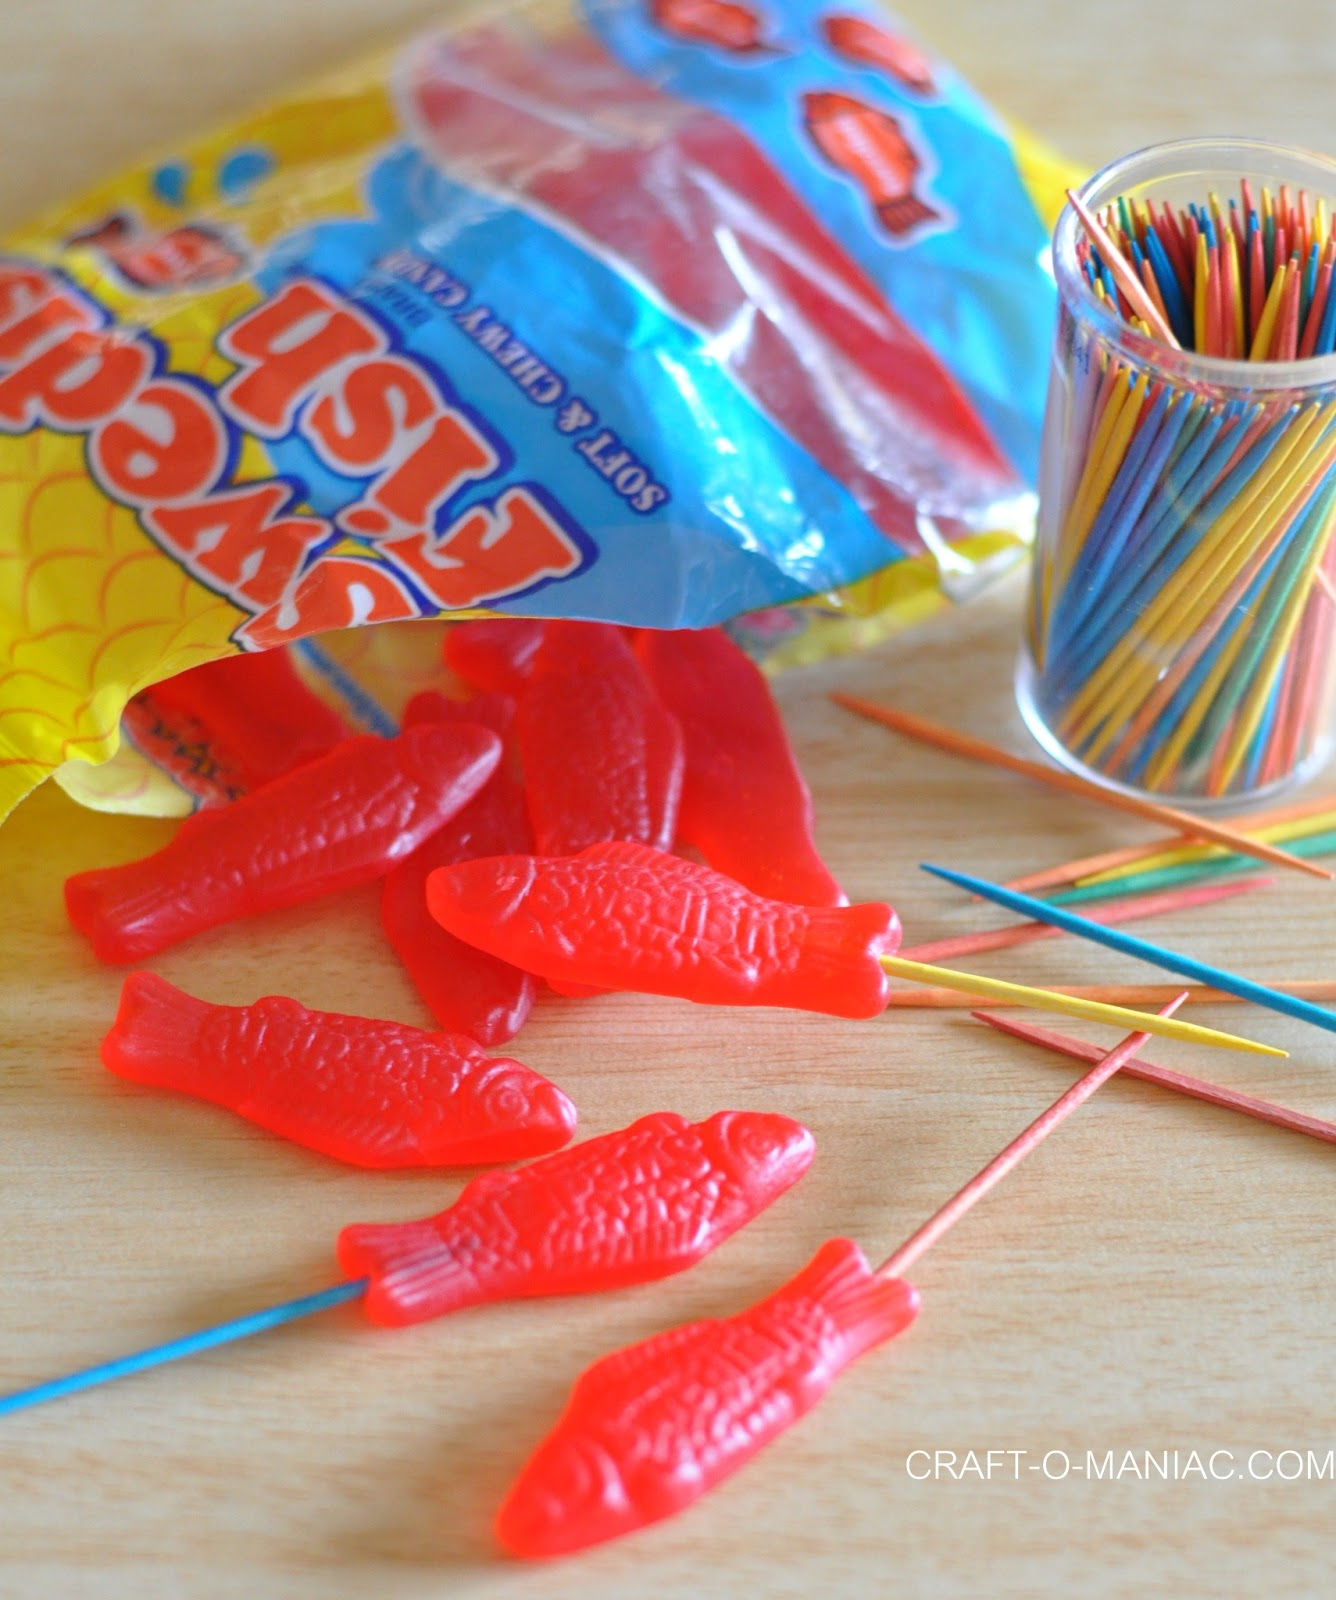 Chocolate dipped swedish fish craft o maniac for Who makes swedish fish